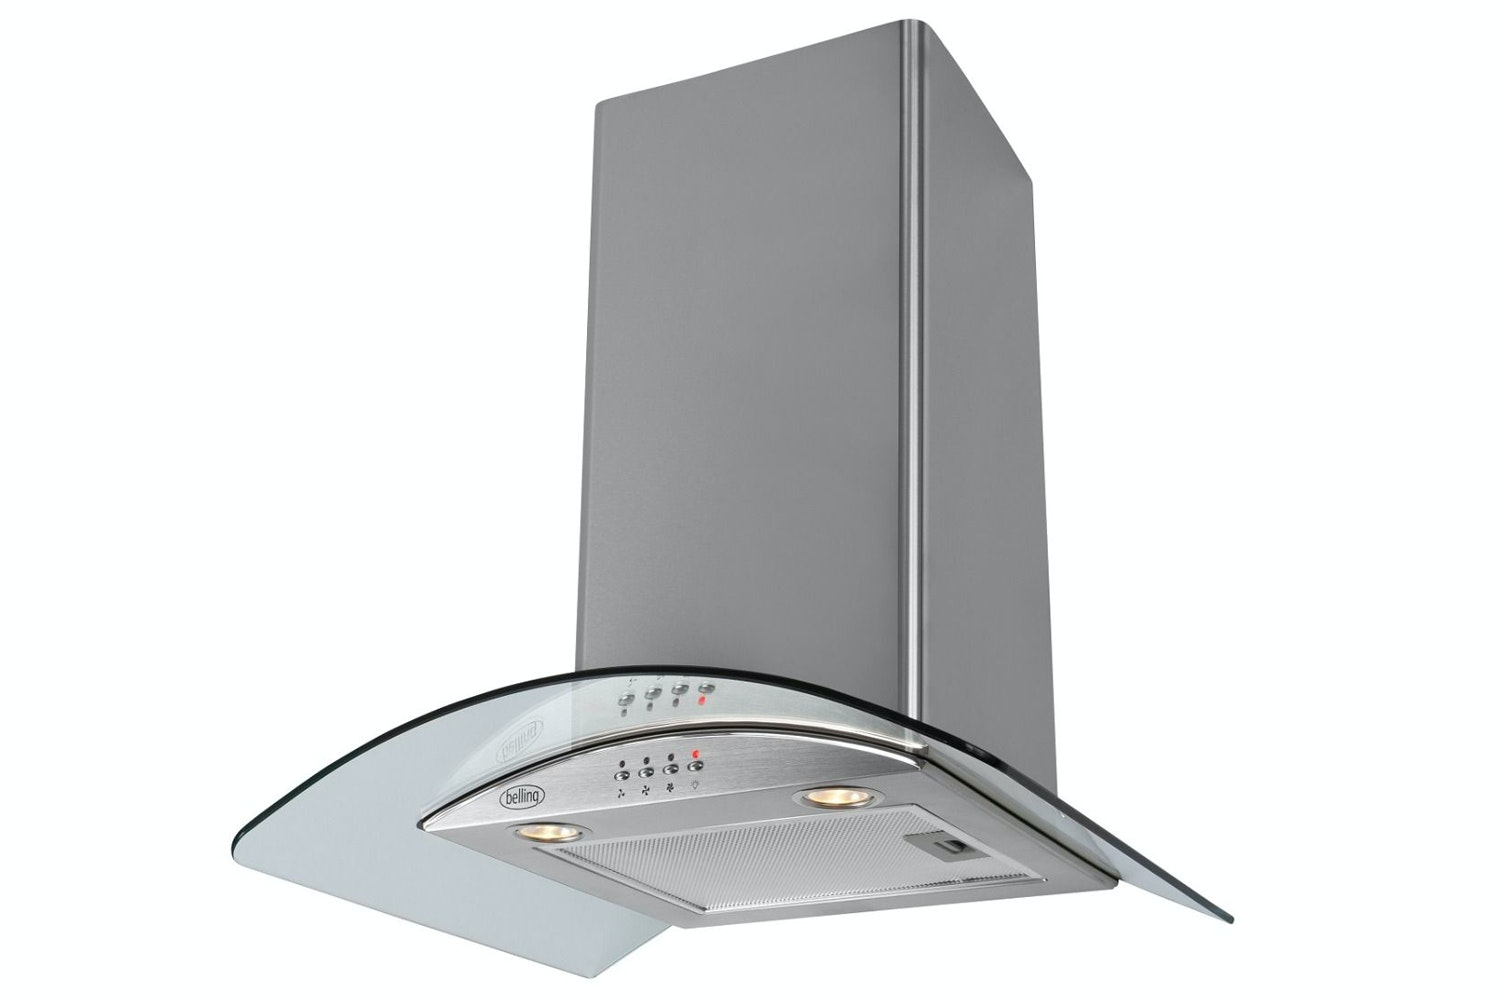 Belling 60cm Curved Glass Hood | CHIM603GSS